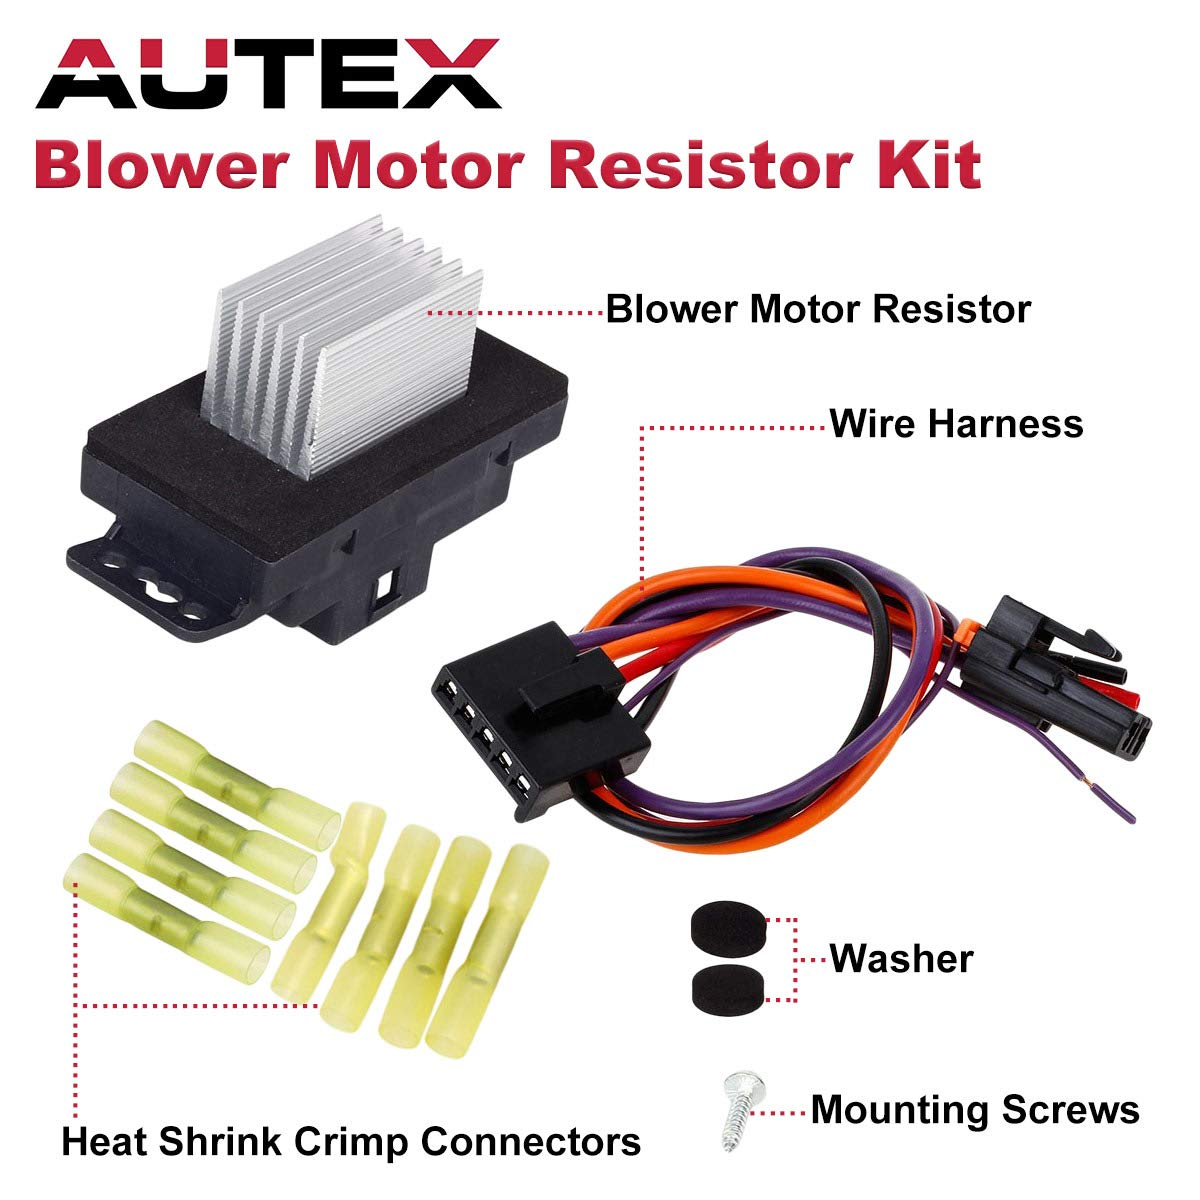 Partssquare Hvac Blower Motor Resistor Complete Kit With Wire Harness 15850268 22754990 Ru359 Replacement For Chevy Silverado Tahoe Suburban